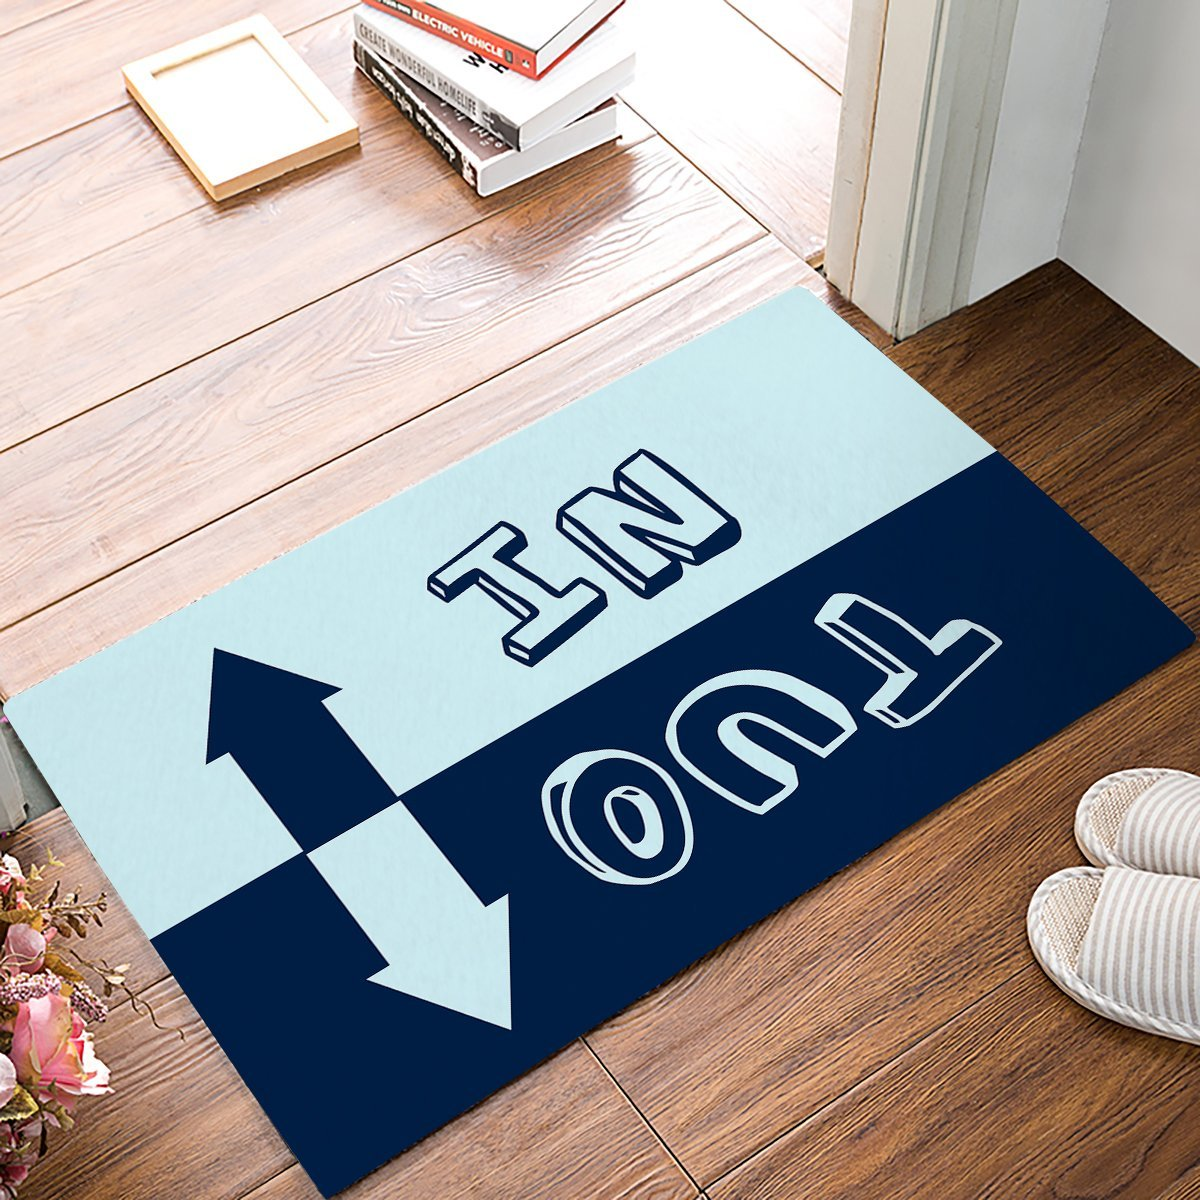 Light And Dark Blue Arrow In & Out Funny Pattern Door Mats Kitchen Floor Bath Entrance Rug Mat Absorbent Indoor Bathroom